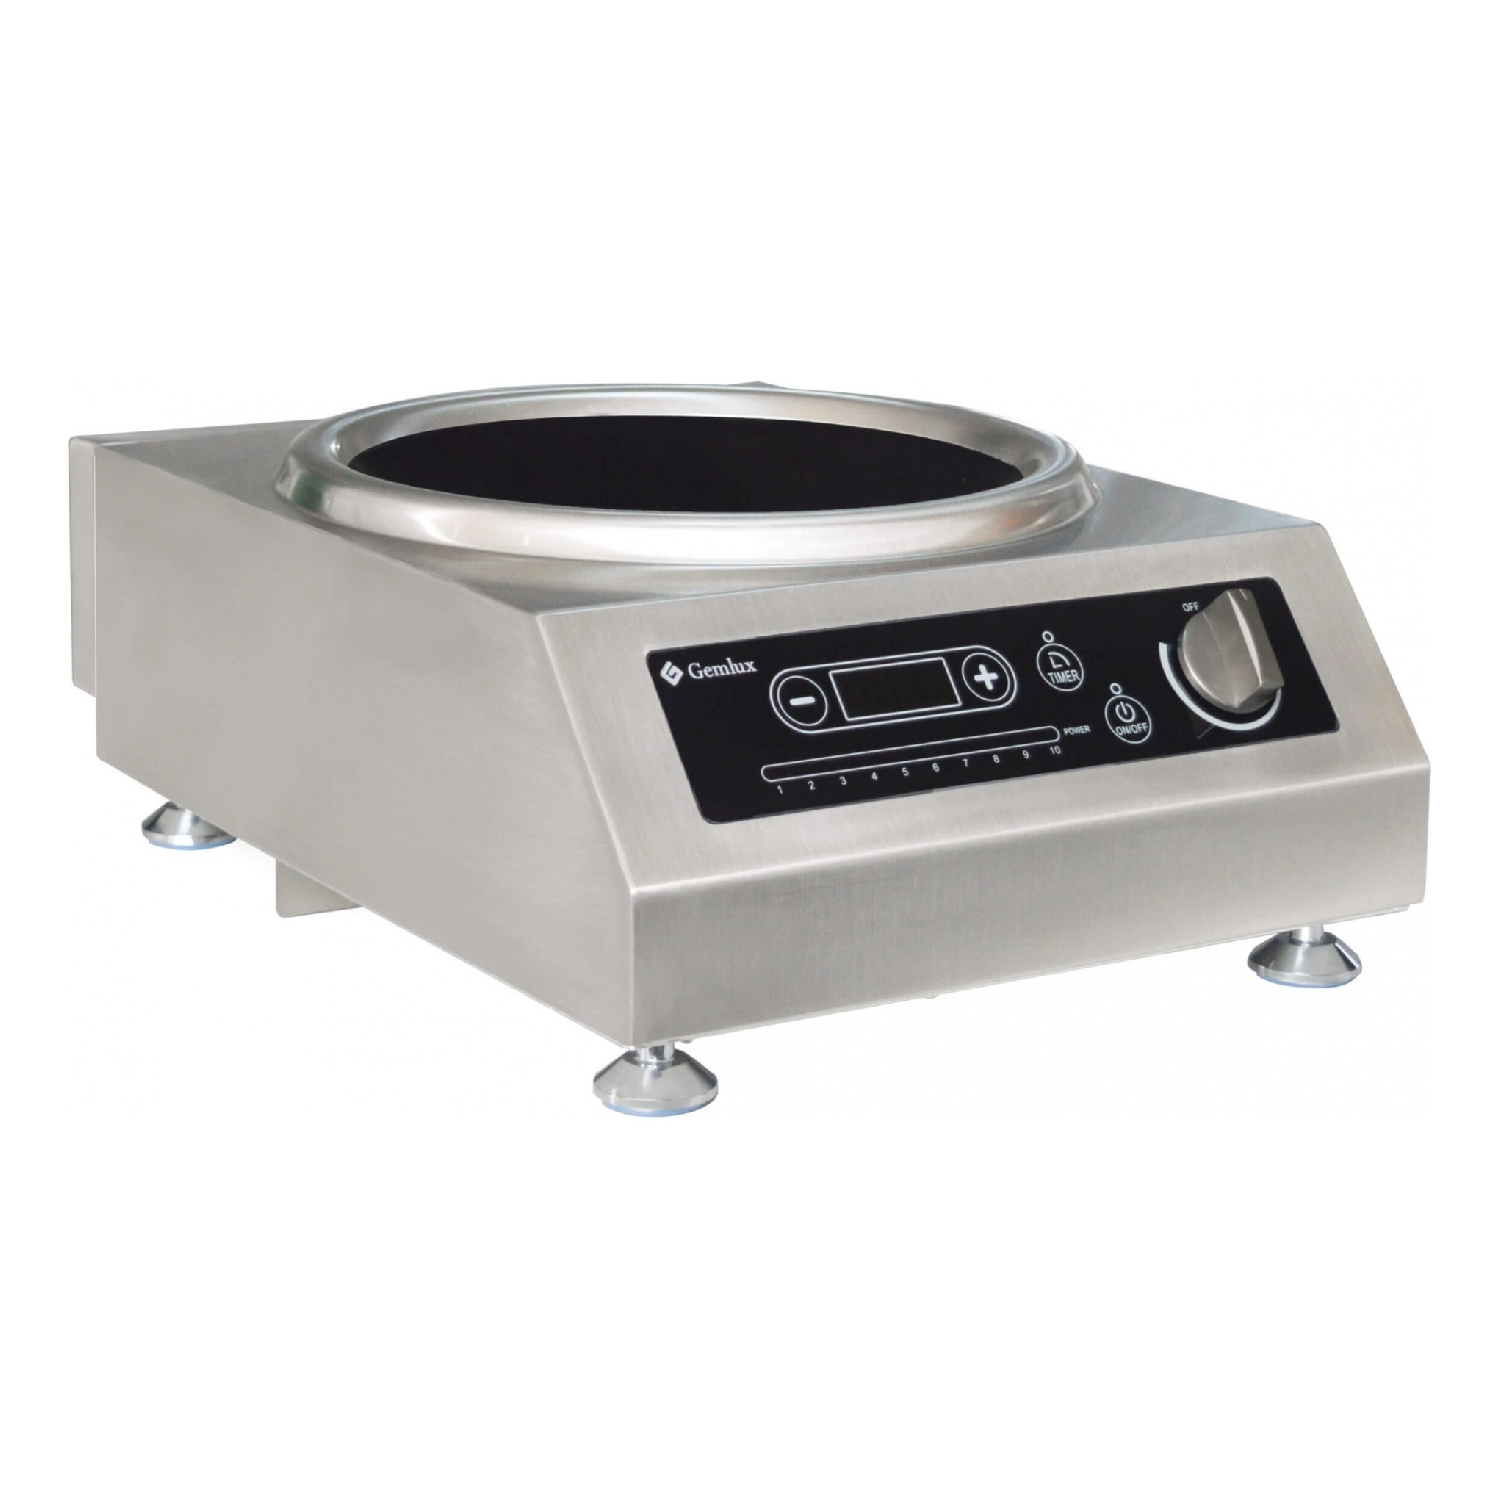 Oven electric GEMLUX GL-IC3100WPRO dmwd mini household electric oven multifunction pizza cake baking oven with 60 minutes timer stainless steel toaster 2 layers 9l